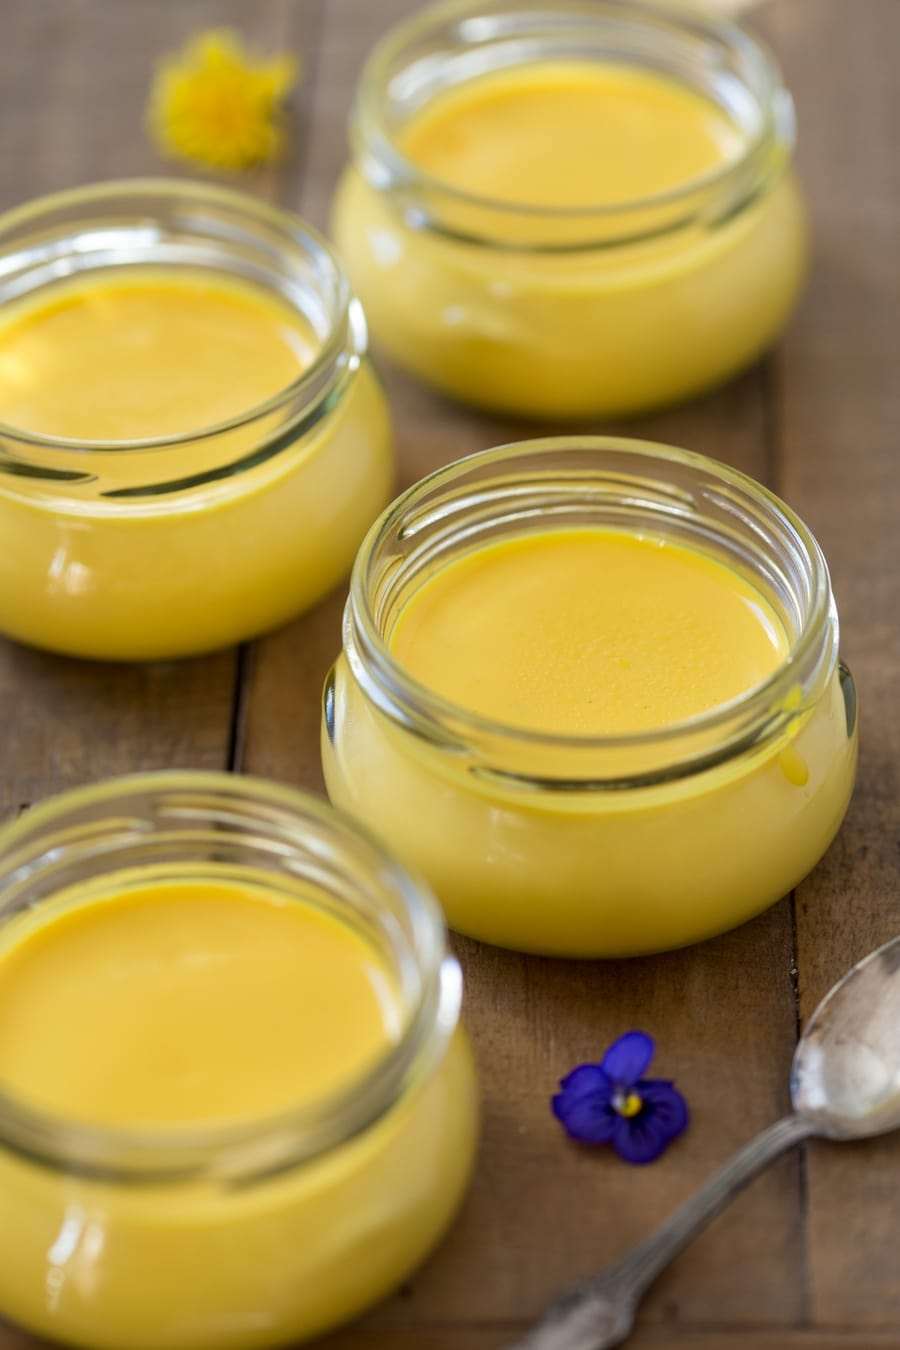 Saffron panna cotta served in small glass containers.